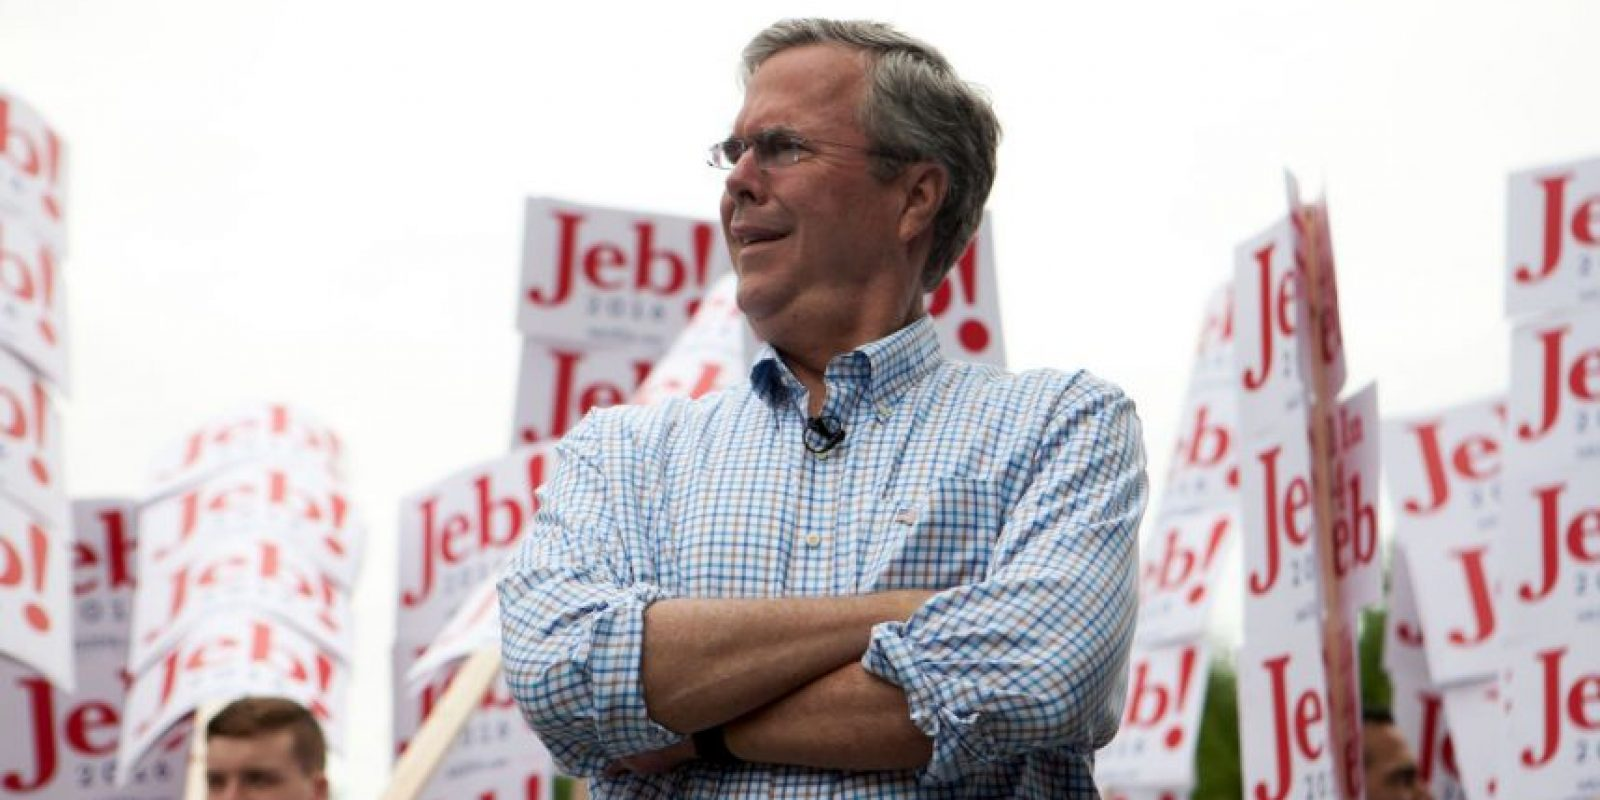 1. Guerra entre Jeb Bush y Marco Rubio- Foto: Getty Images